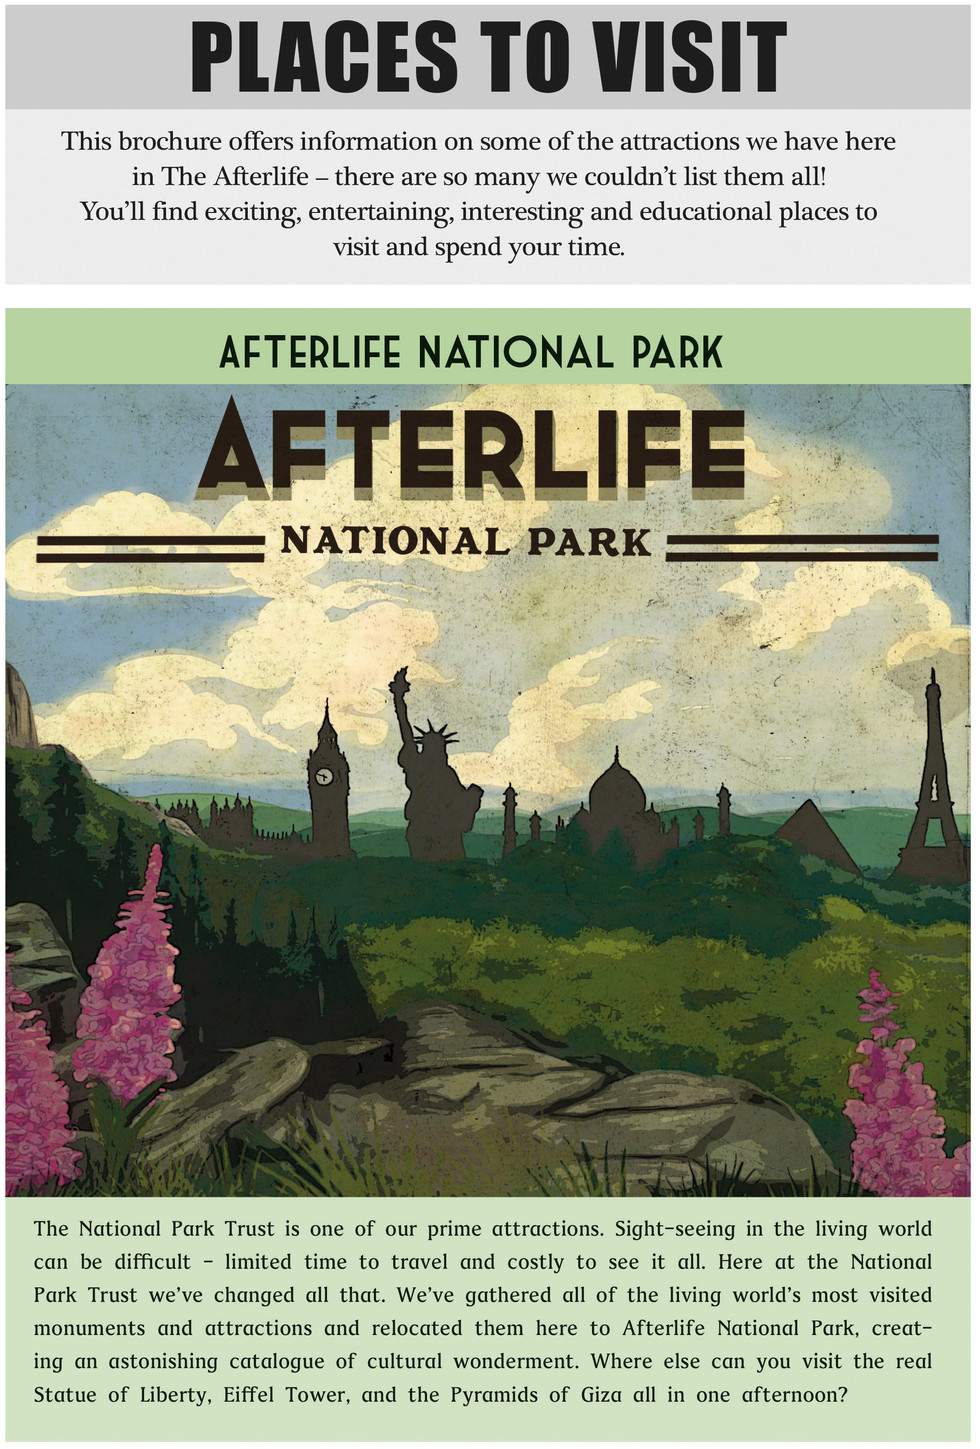 Afterlife National Park, from Afterlife-A guide for the Recently Deceased.